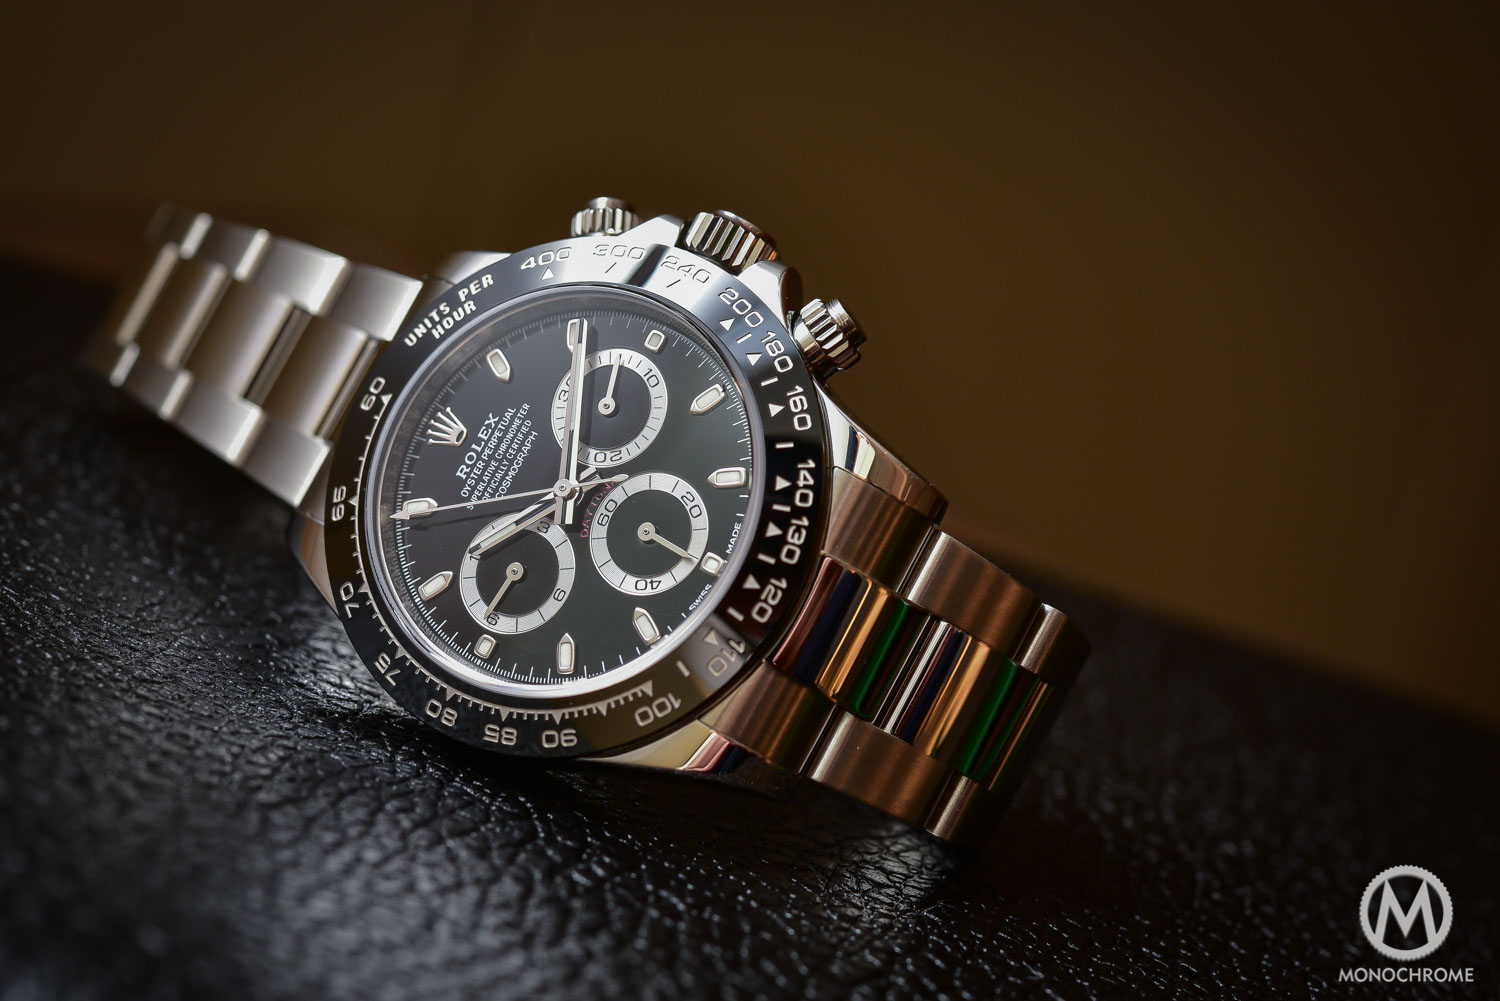 Rolex Daytona 116500LN in steel Cerachrom ceramic black bezel - 10